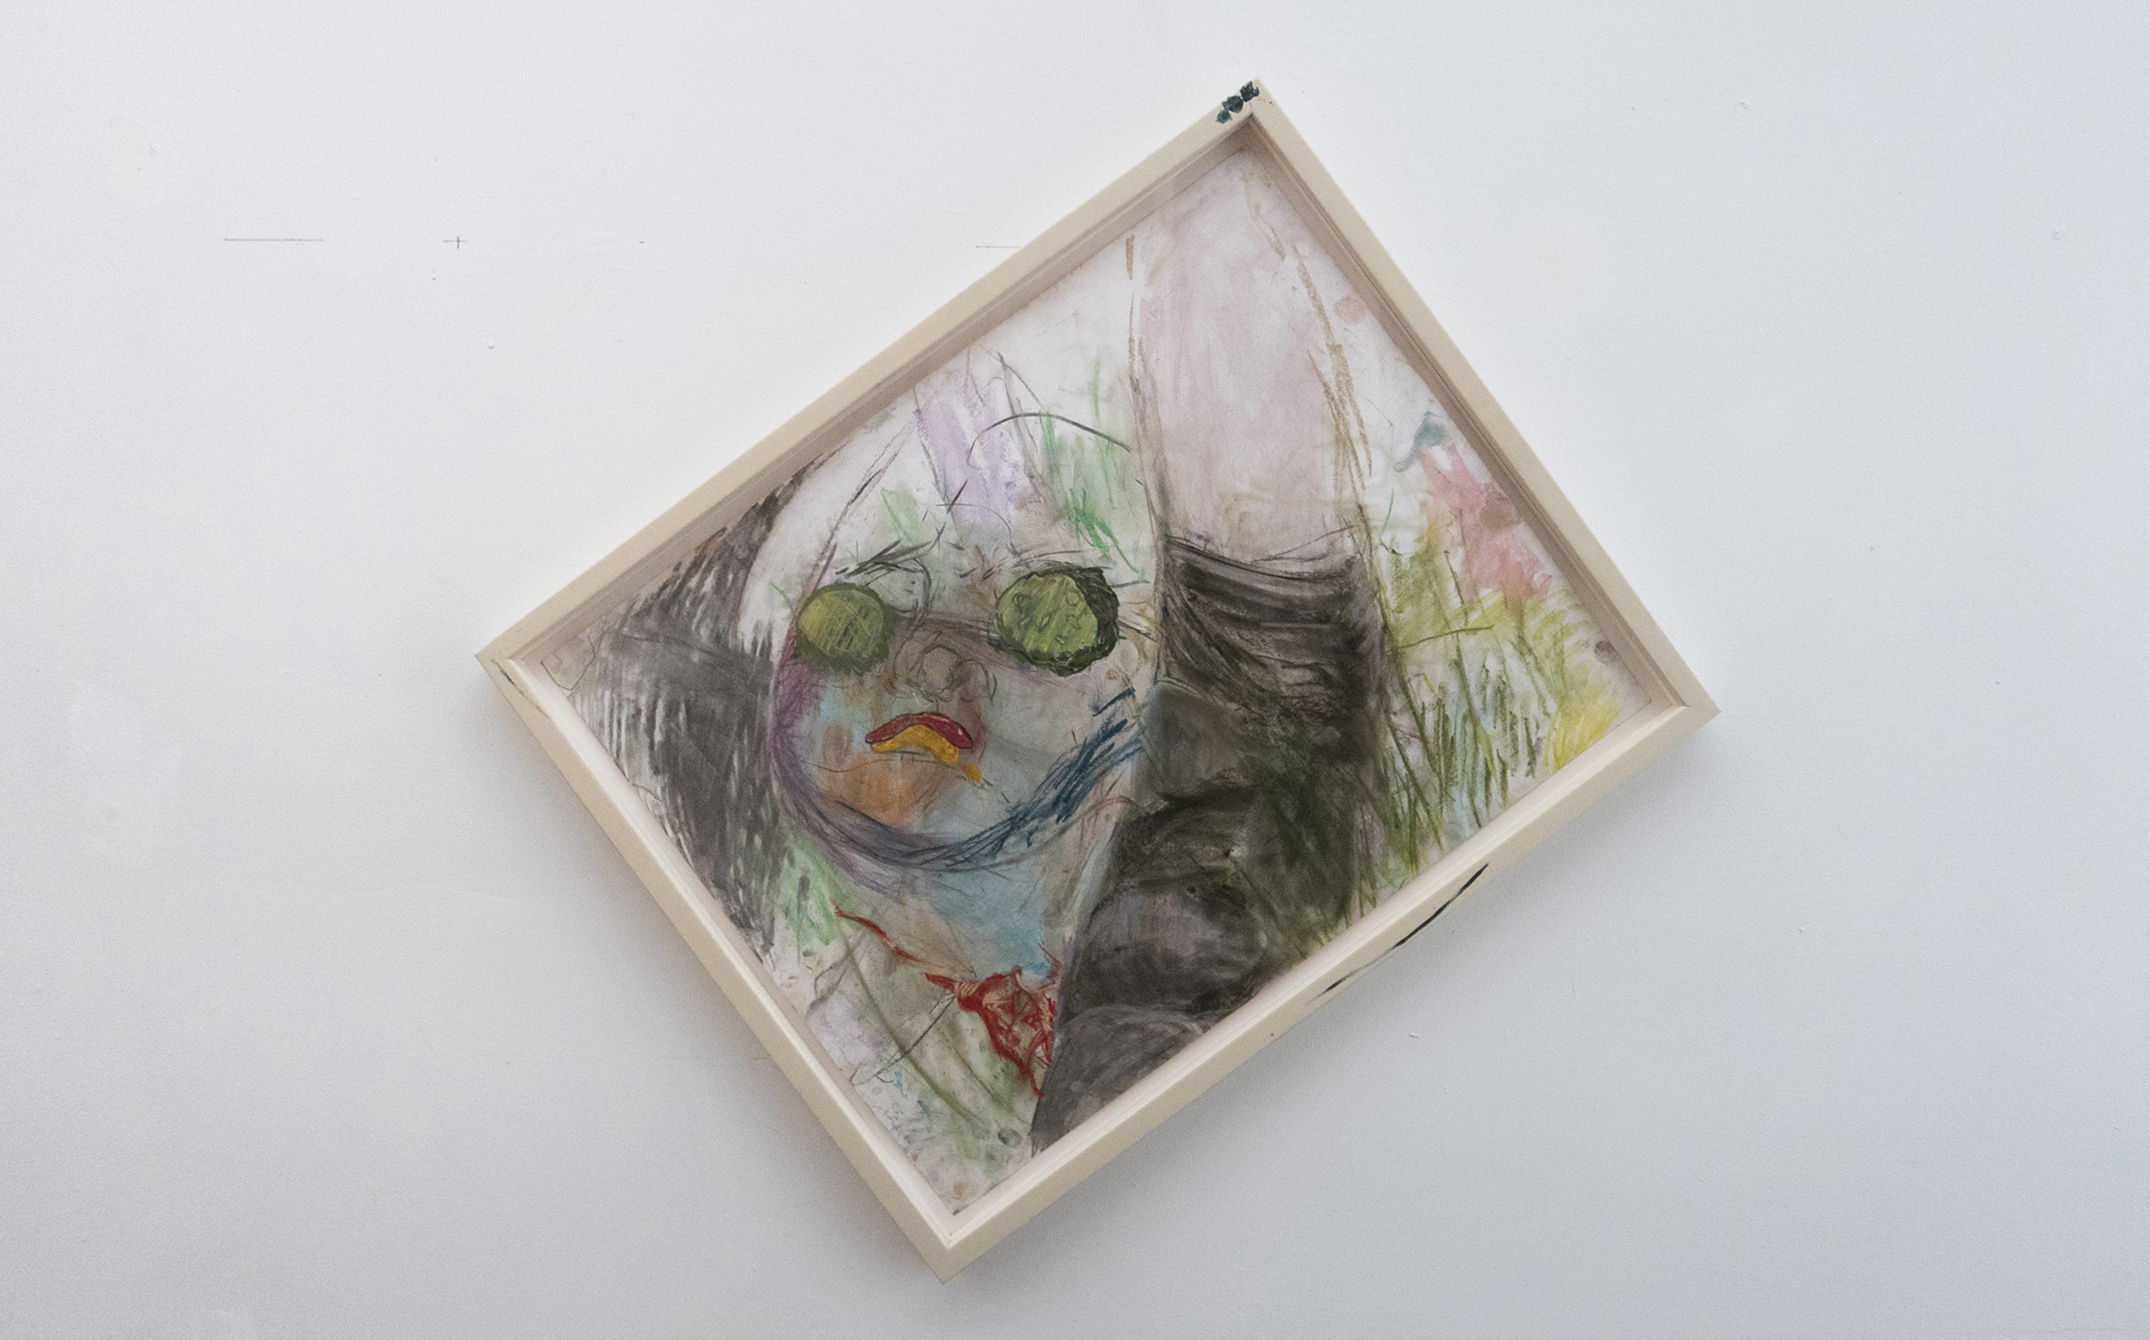 Jenny Gagalka, Beaux Mendes, William Wasserman,  Heinz picnic facial,  2018, pastel on paper, artist's frame, 26.25 × 20.25 in